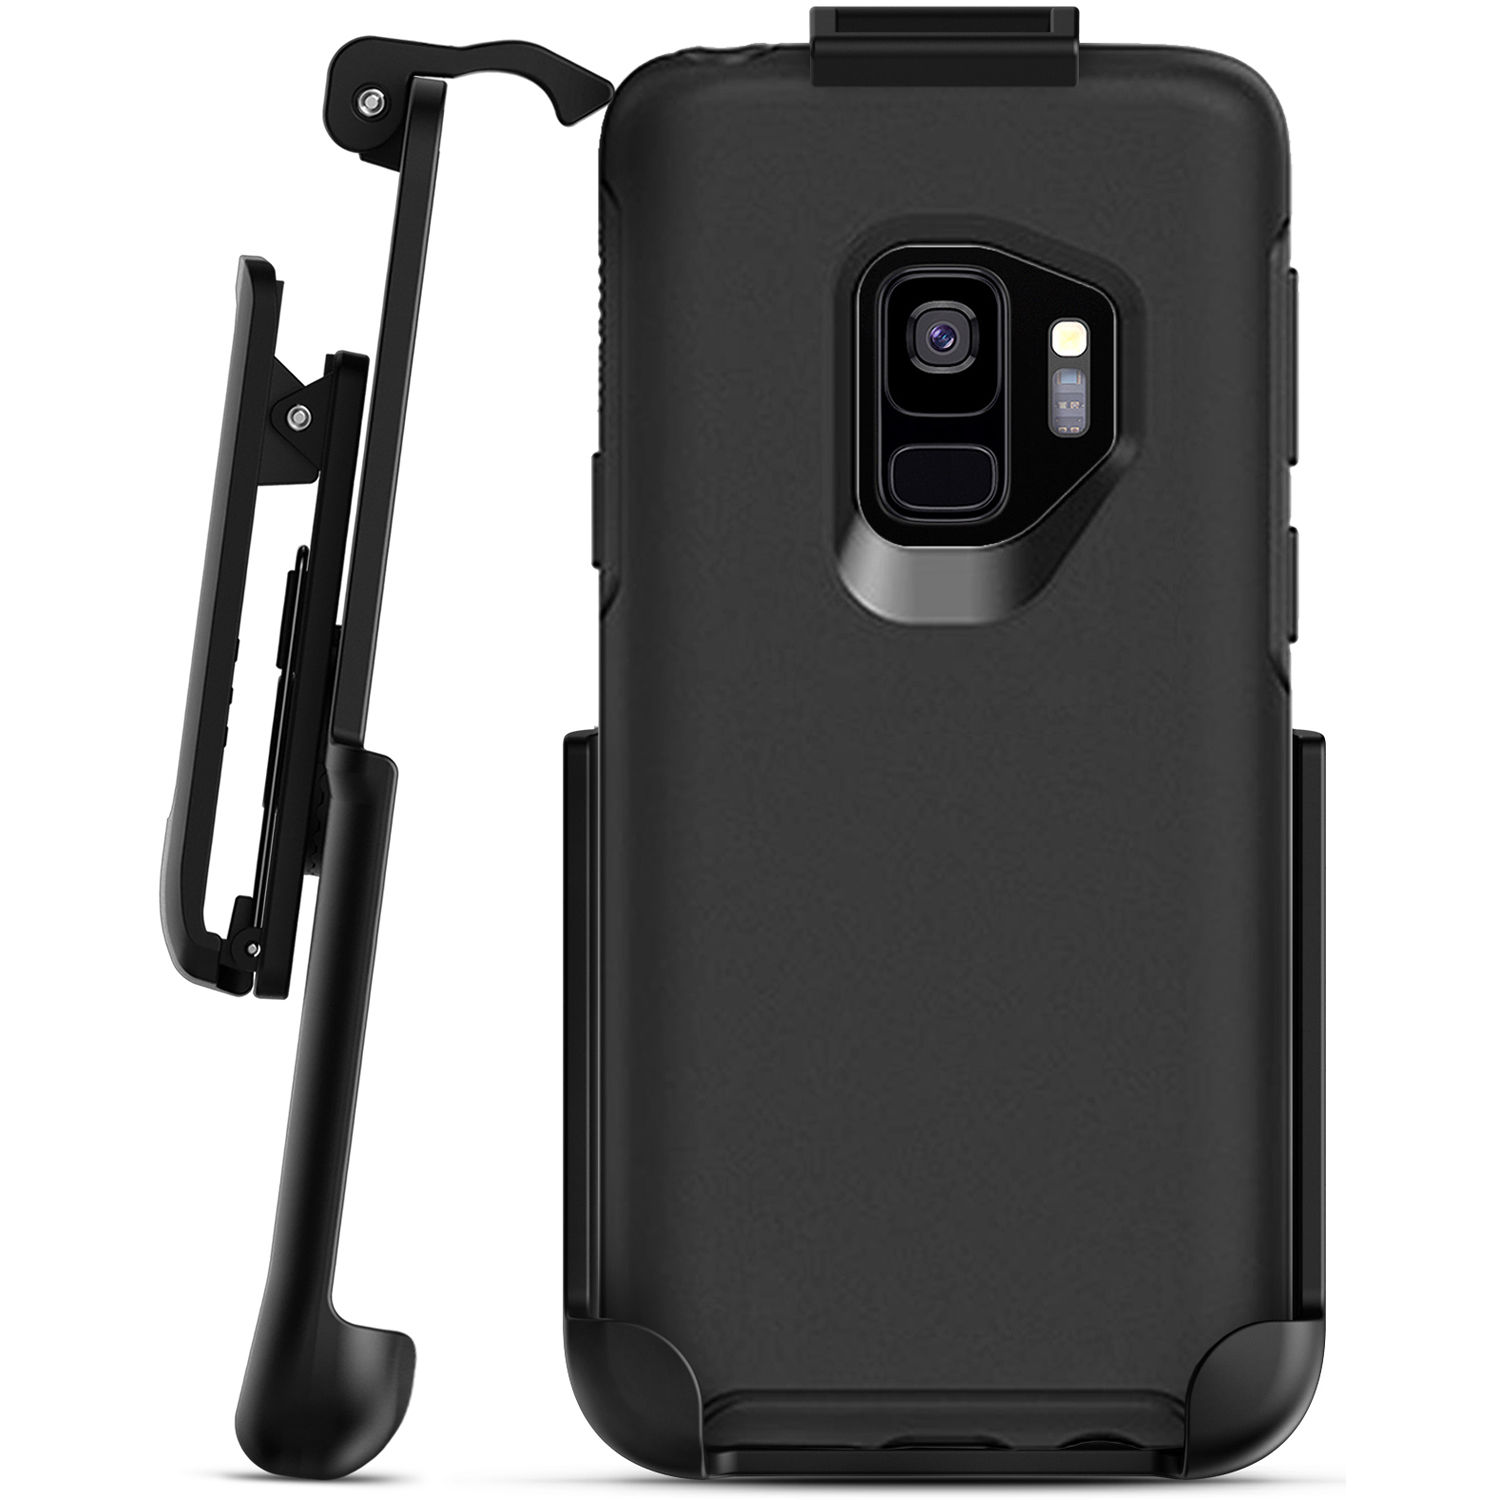 new styles 77c7f 78102 Encased Belt Clip Holster for Galaxy S9 OtterBox Symmetry Case